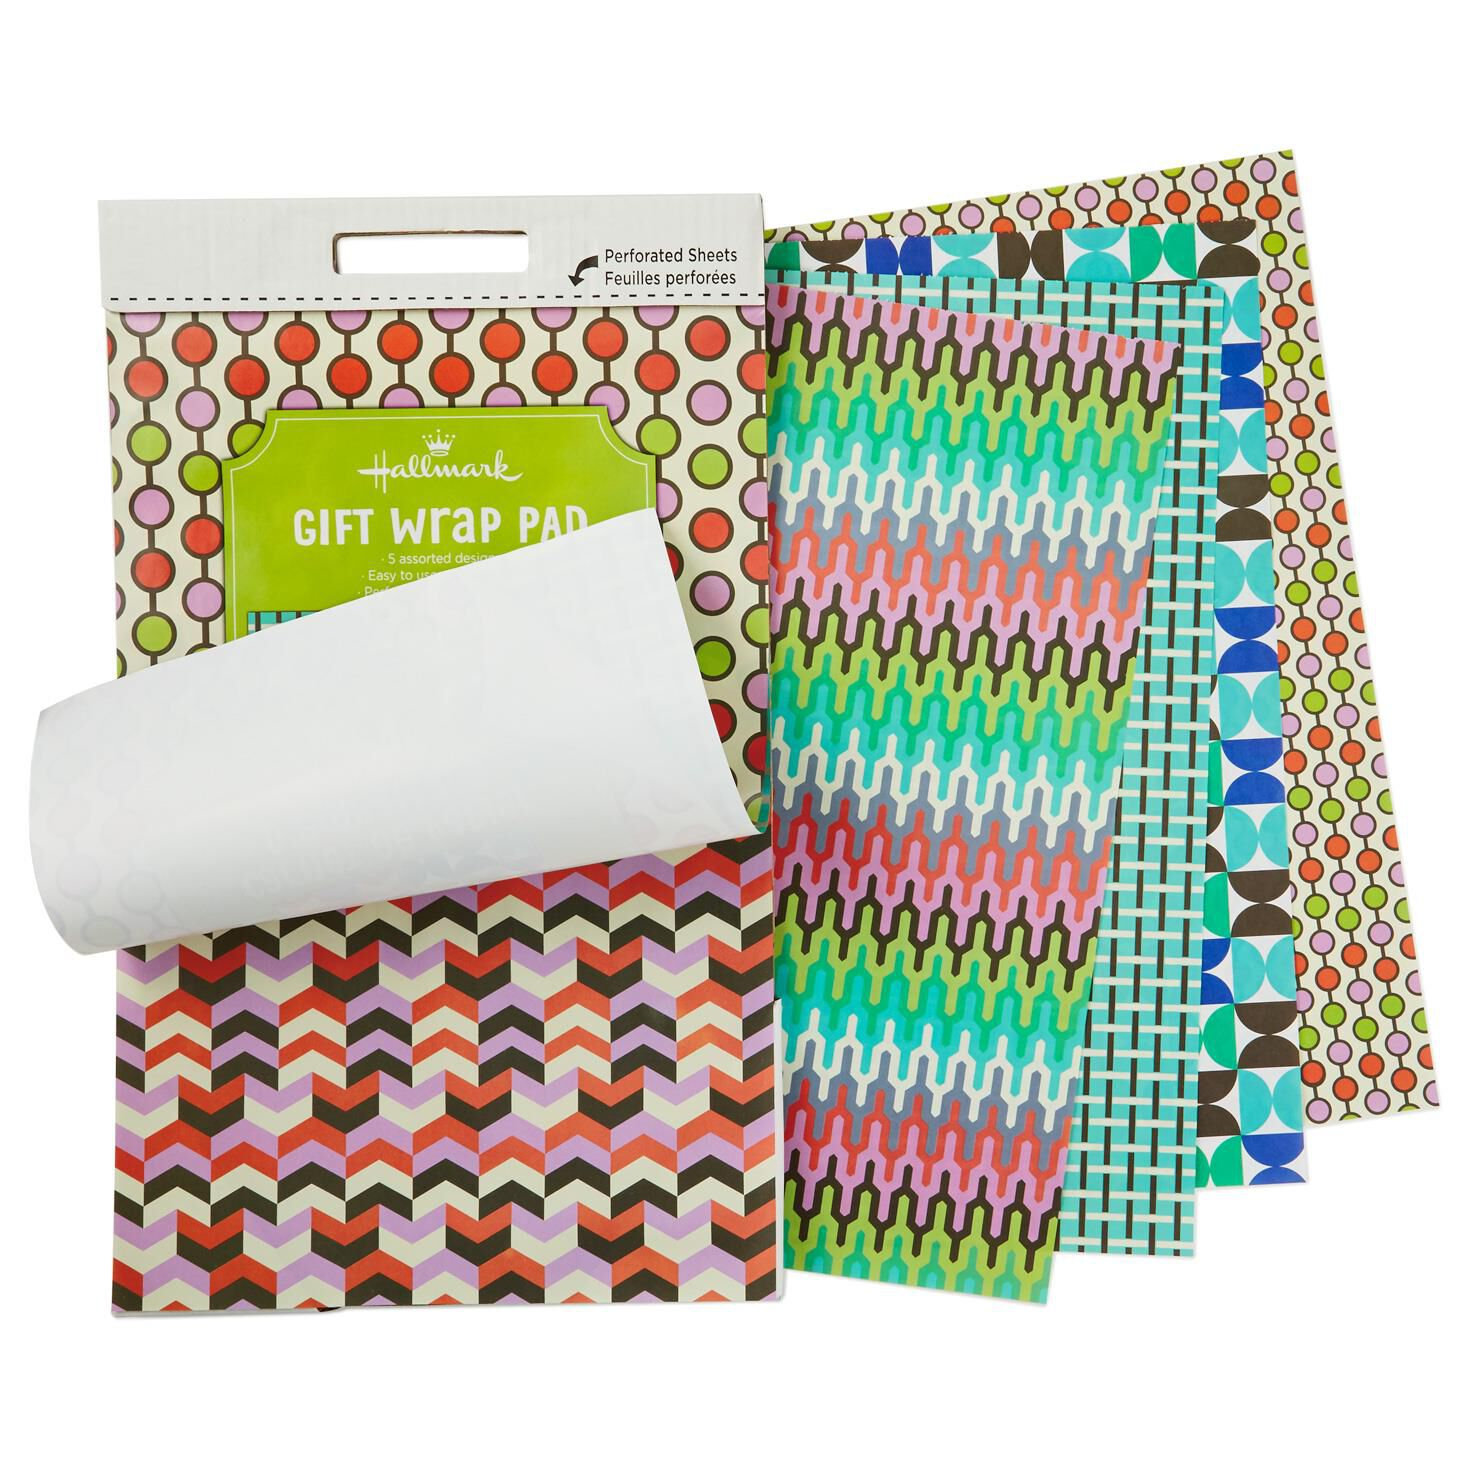 Miniature Wrapping Paper Pad in Graphic Geometric Patterns ...